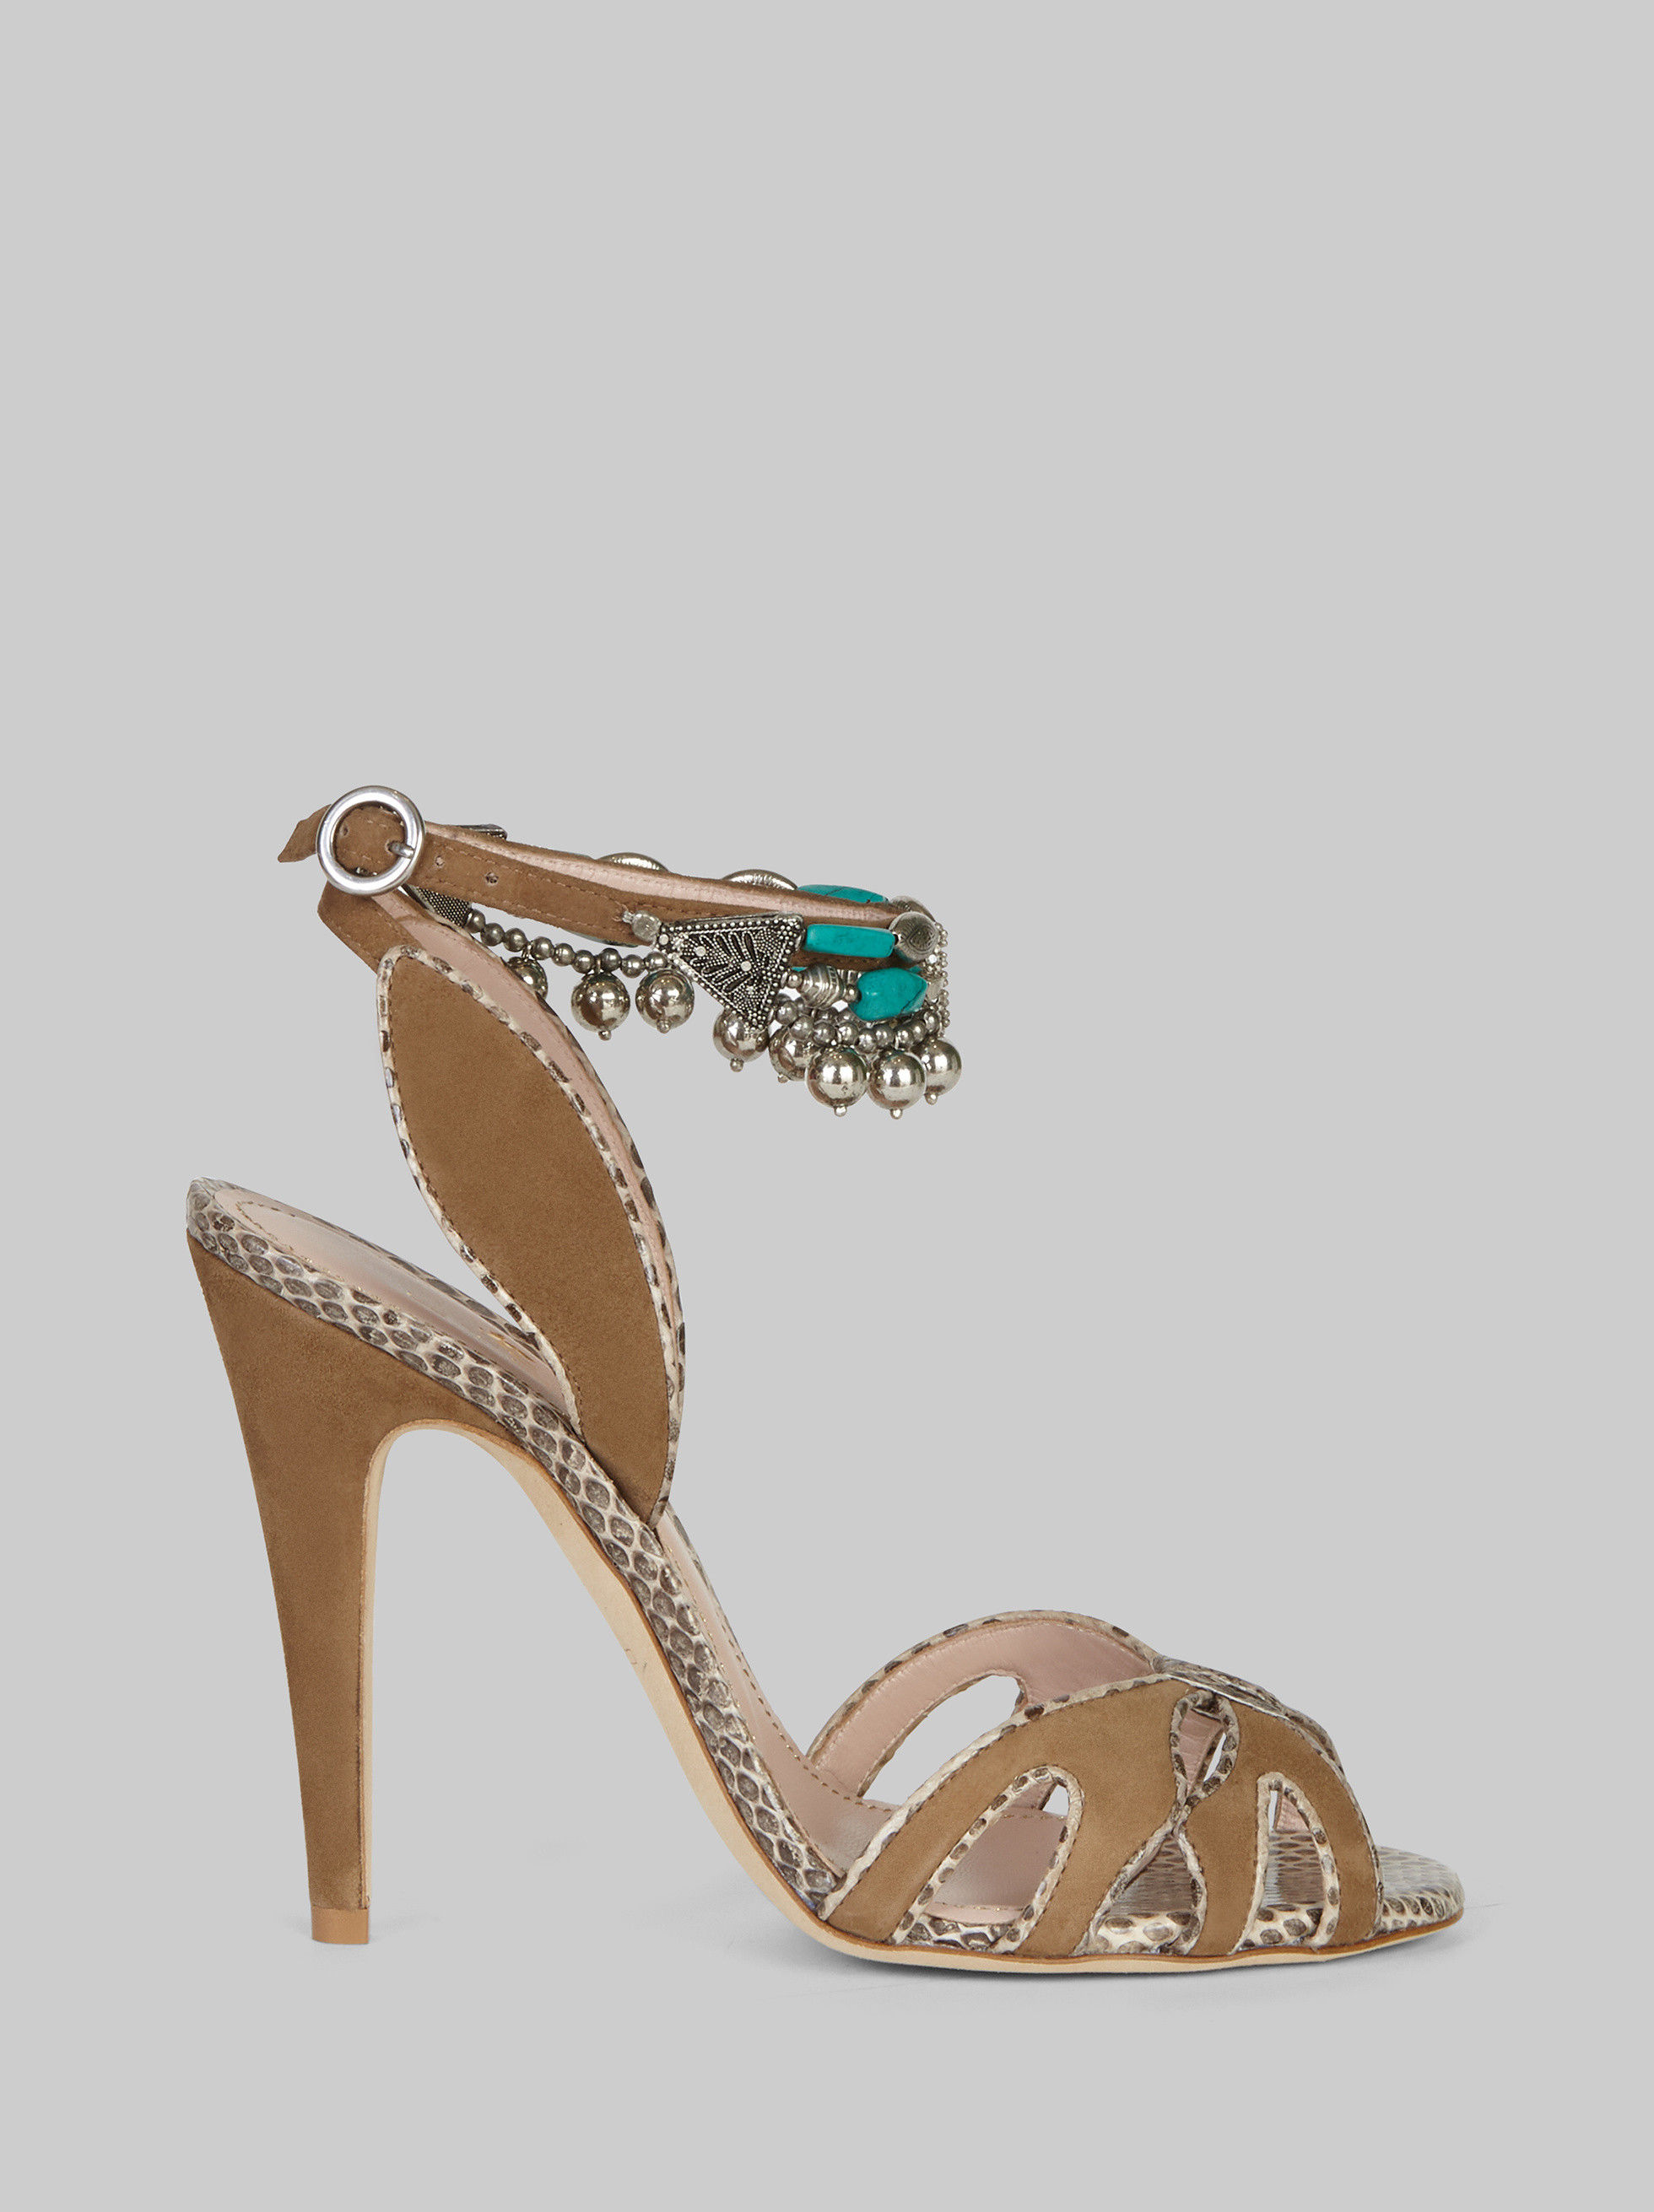 SUEDE AND AYERS SANDALS WITH SEMI-PRECIOUS STONES